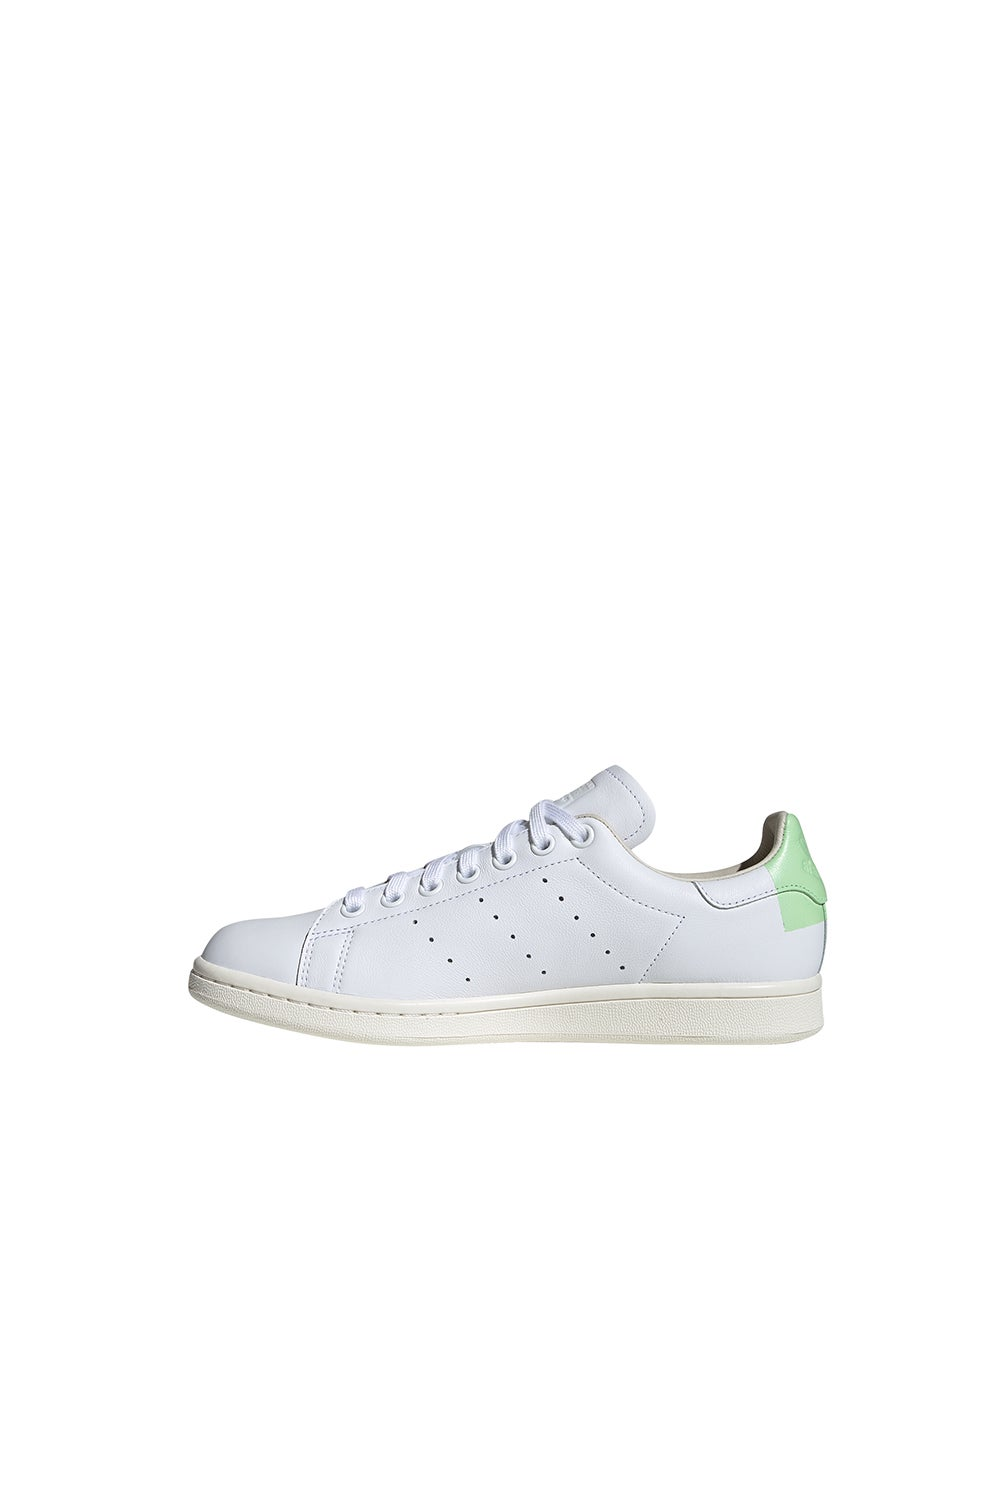 adidas Stan Smith FTWR White/Glow Green/Off White